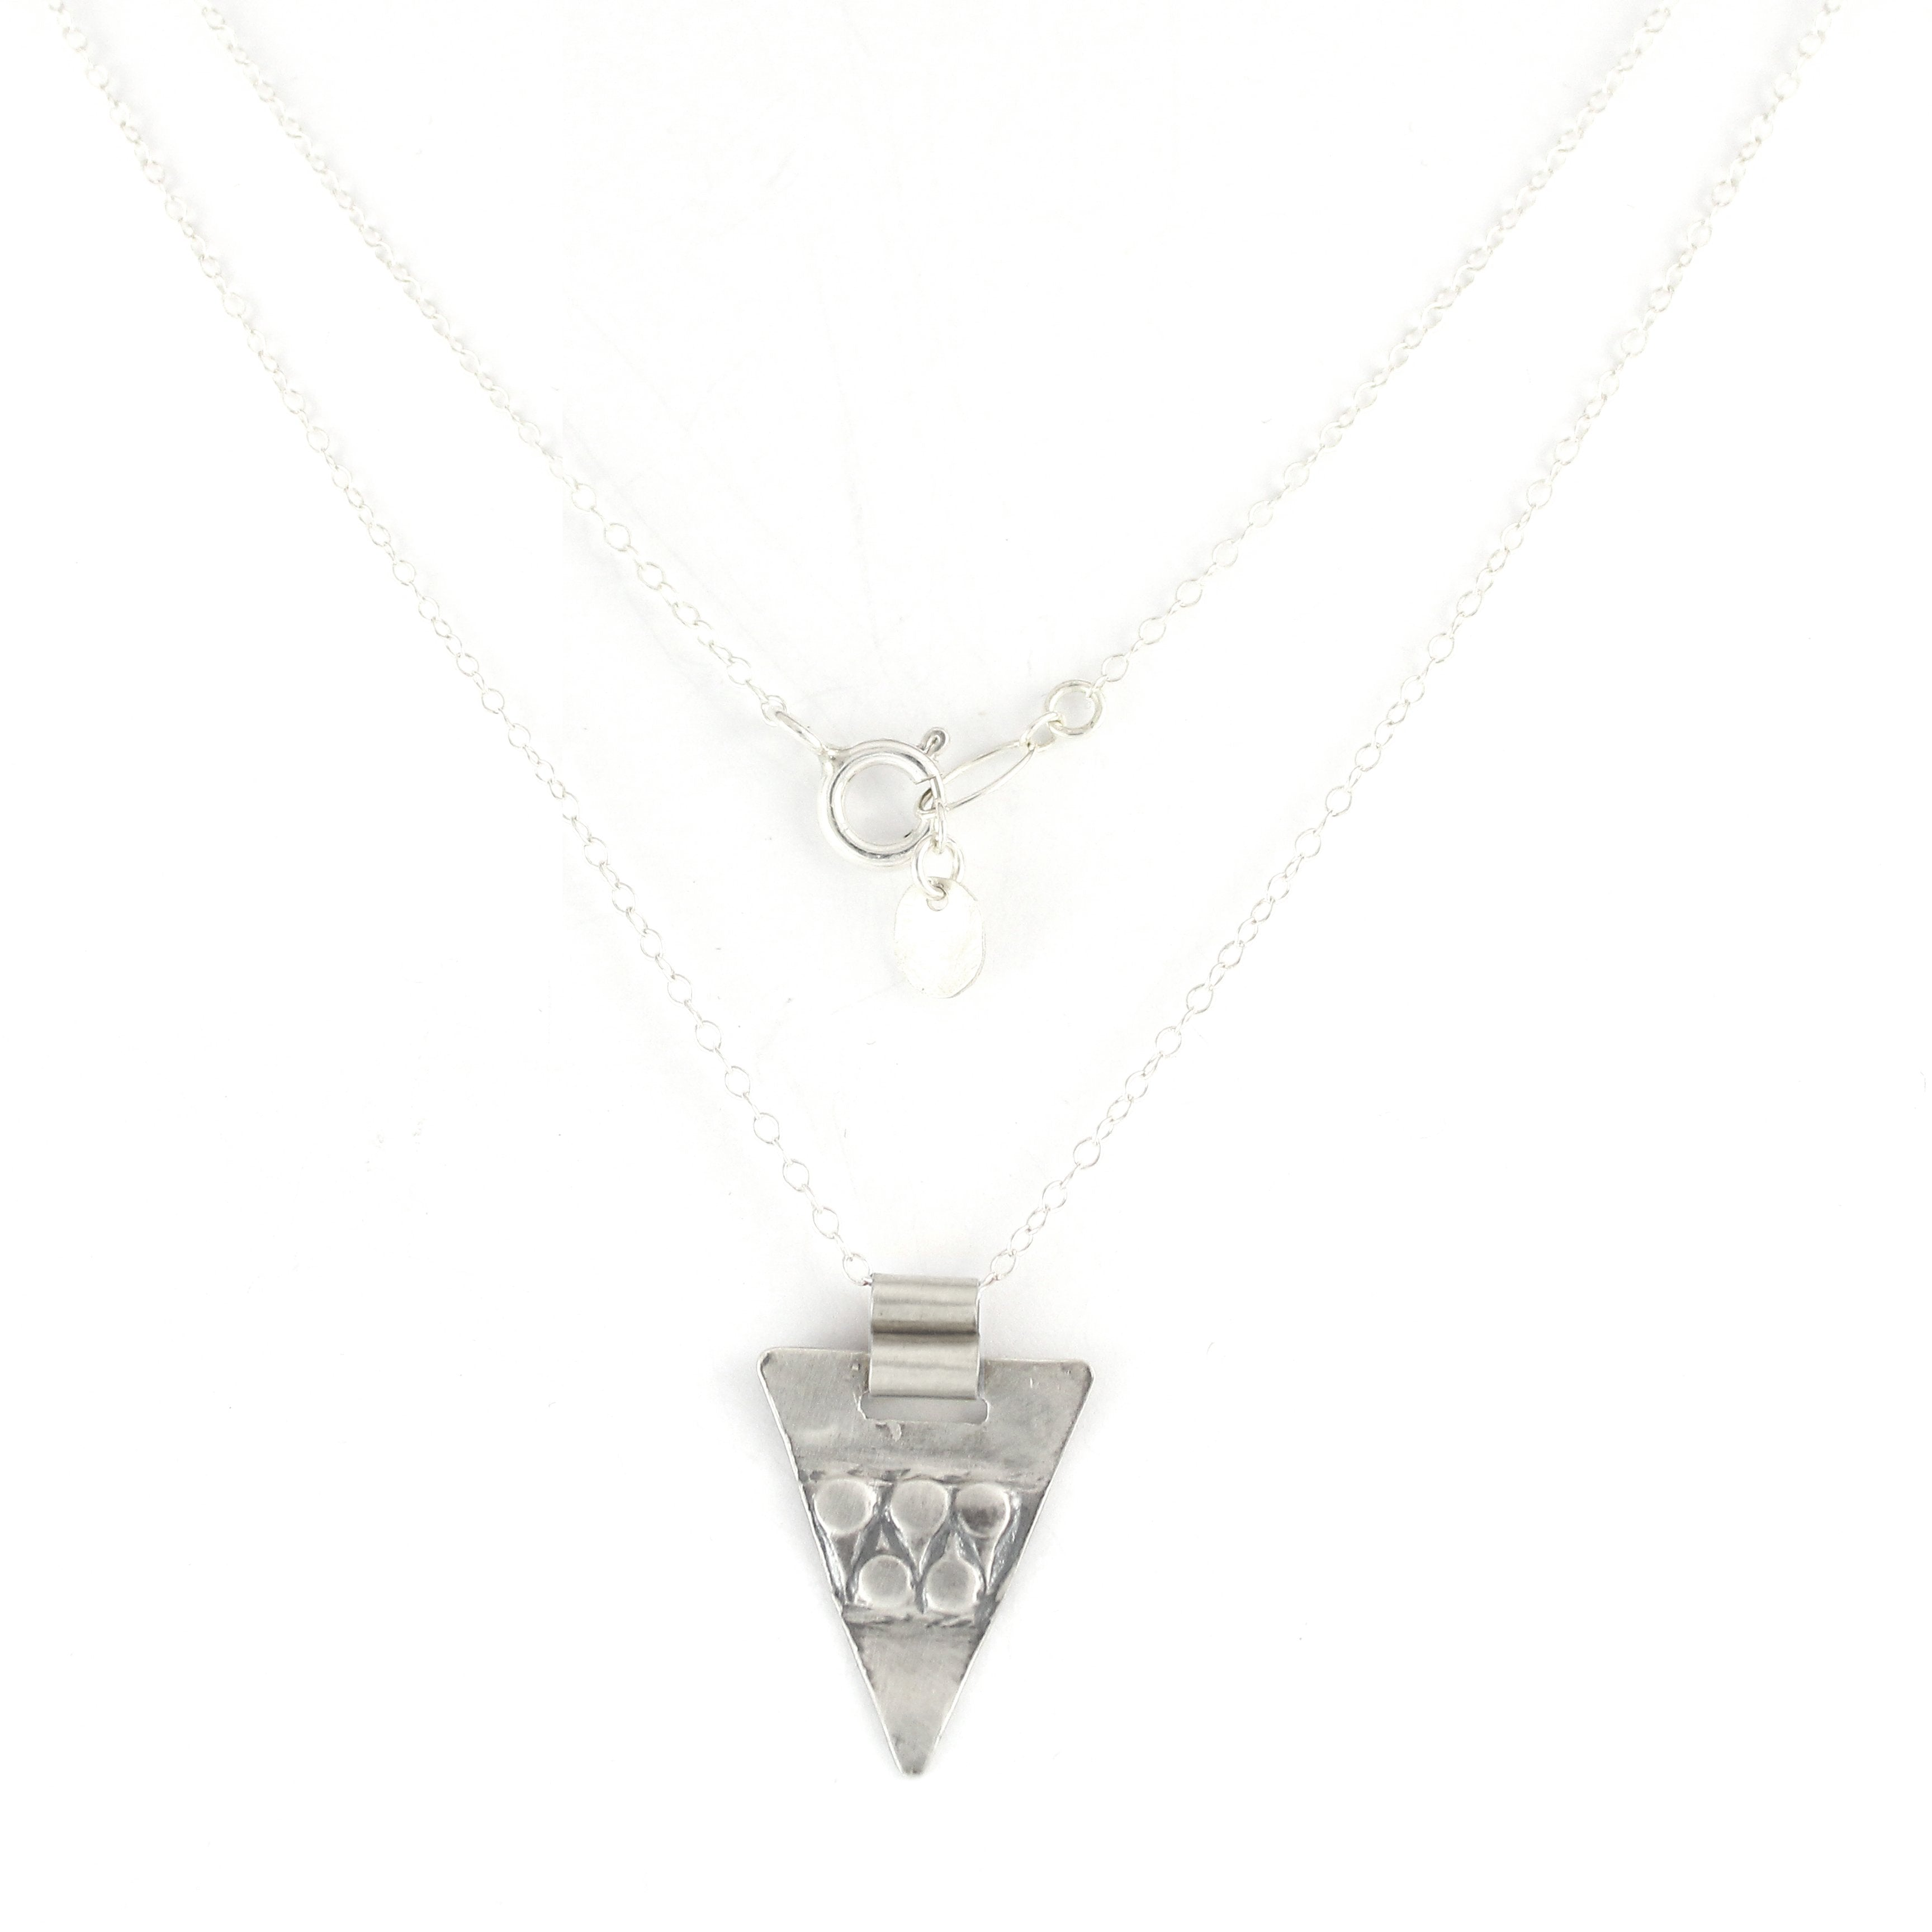 Silver & Gold filled Triangular Pendent Necklace - Shulamit Kanter